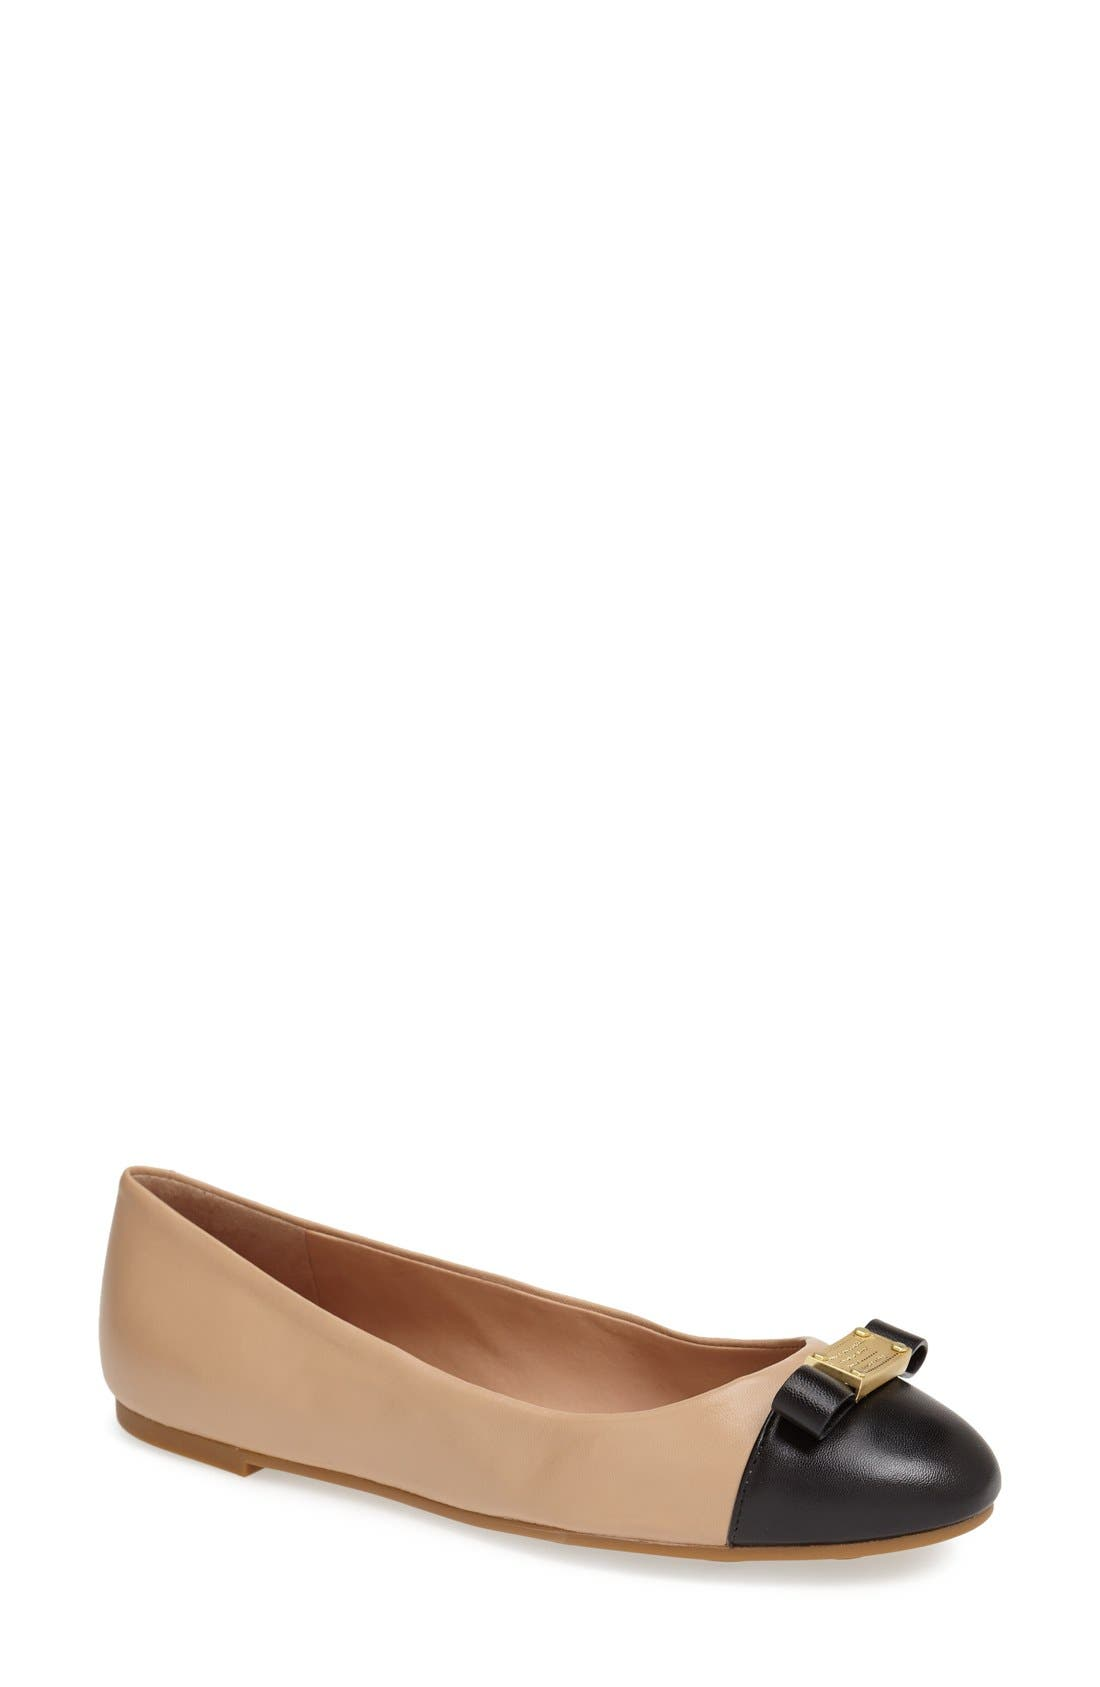 Alternate Image 1 Selected - MARC BY MARC JACOBS Cap Toe Ballet Flat (Women)